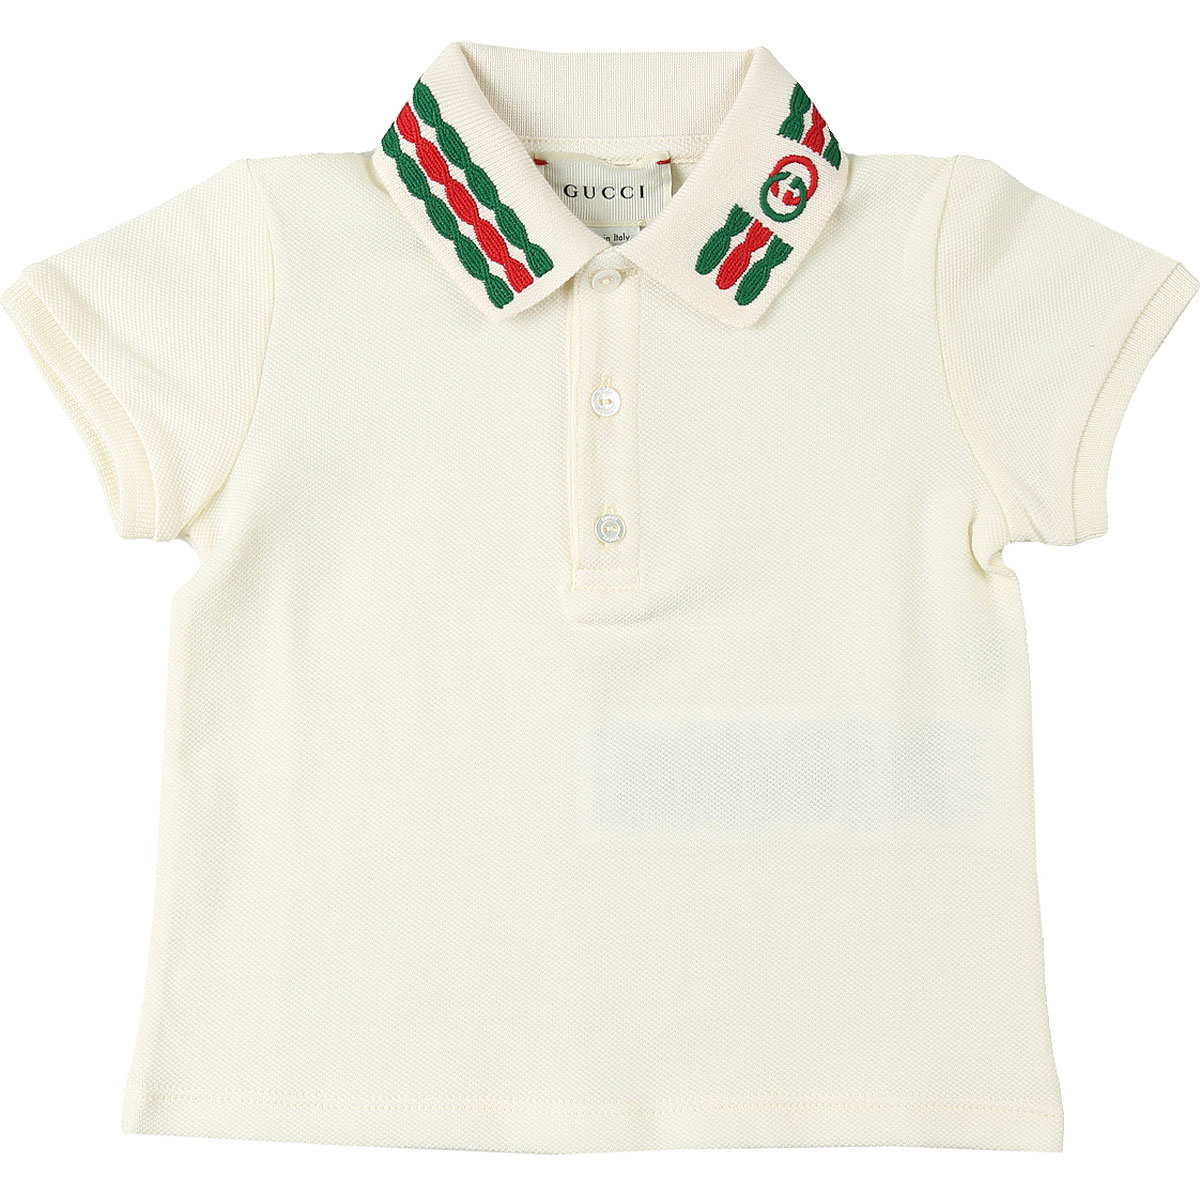 Gucci Baby Polo Shirt for Boys On Sale, Ivory White, Cotton, 2019, 12 M 18M 24M 3Y 9M